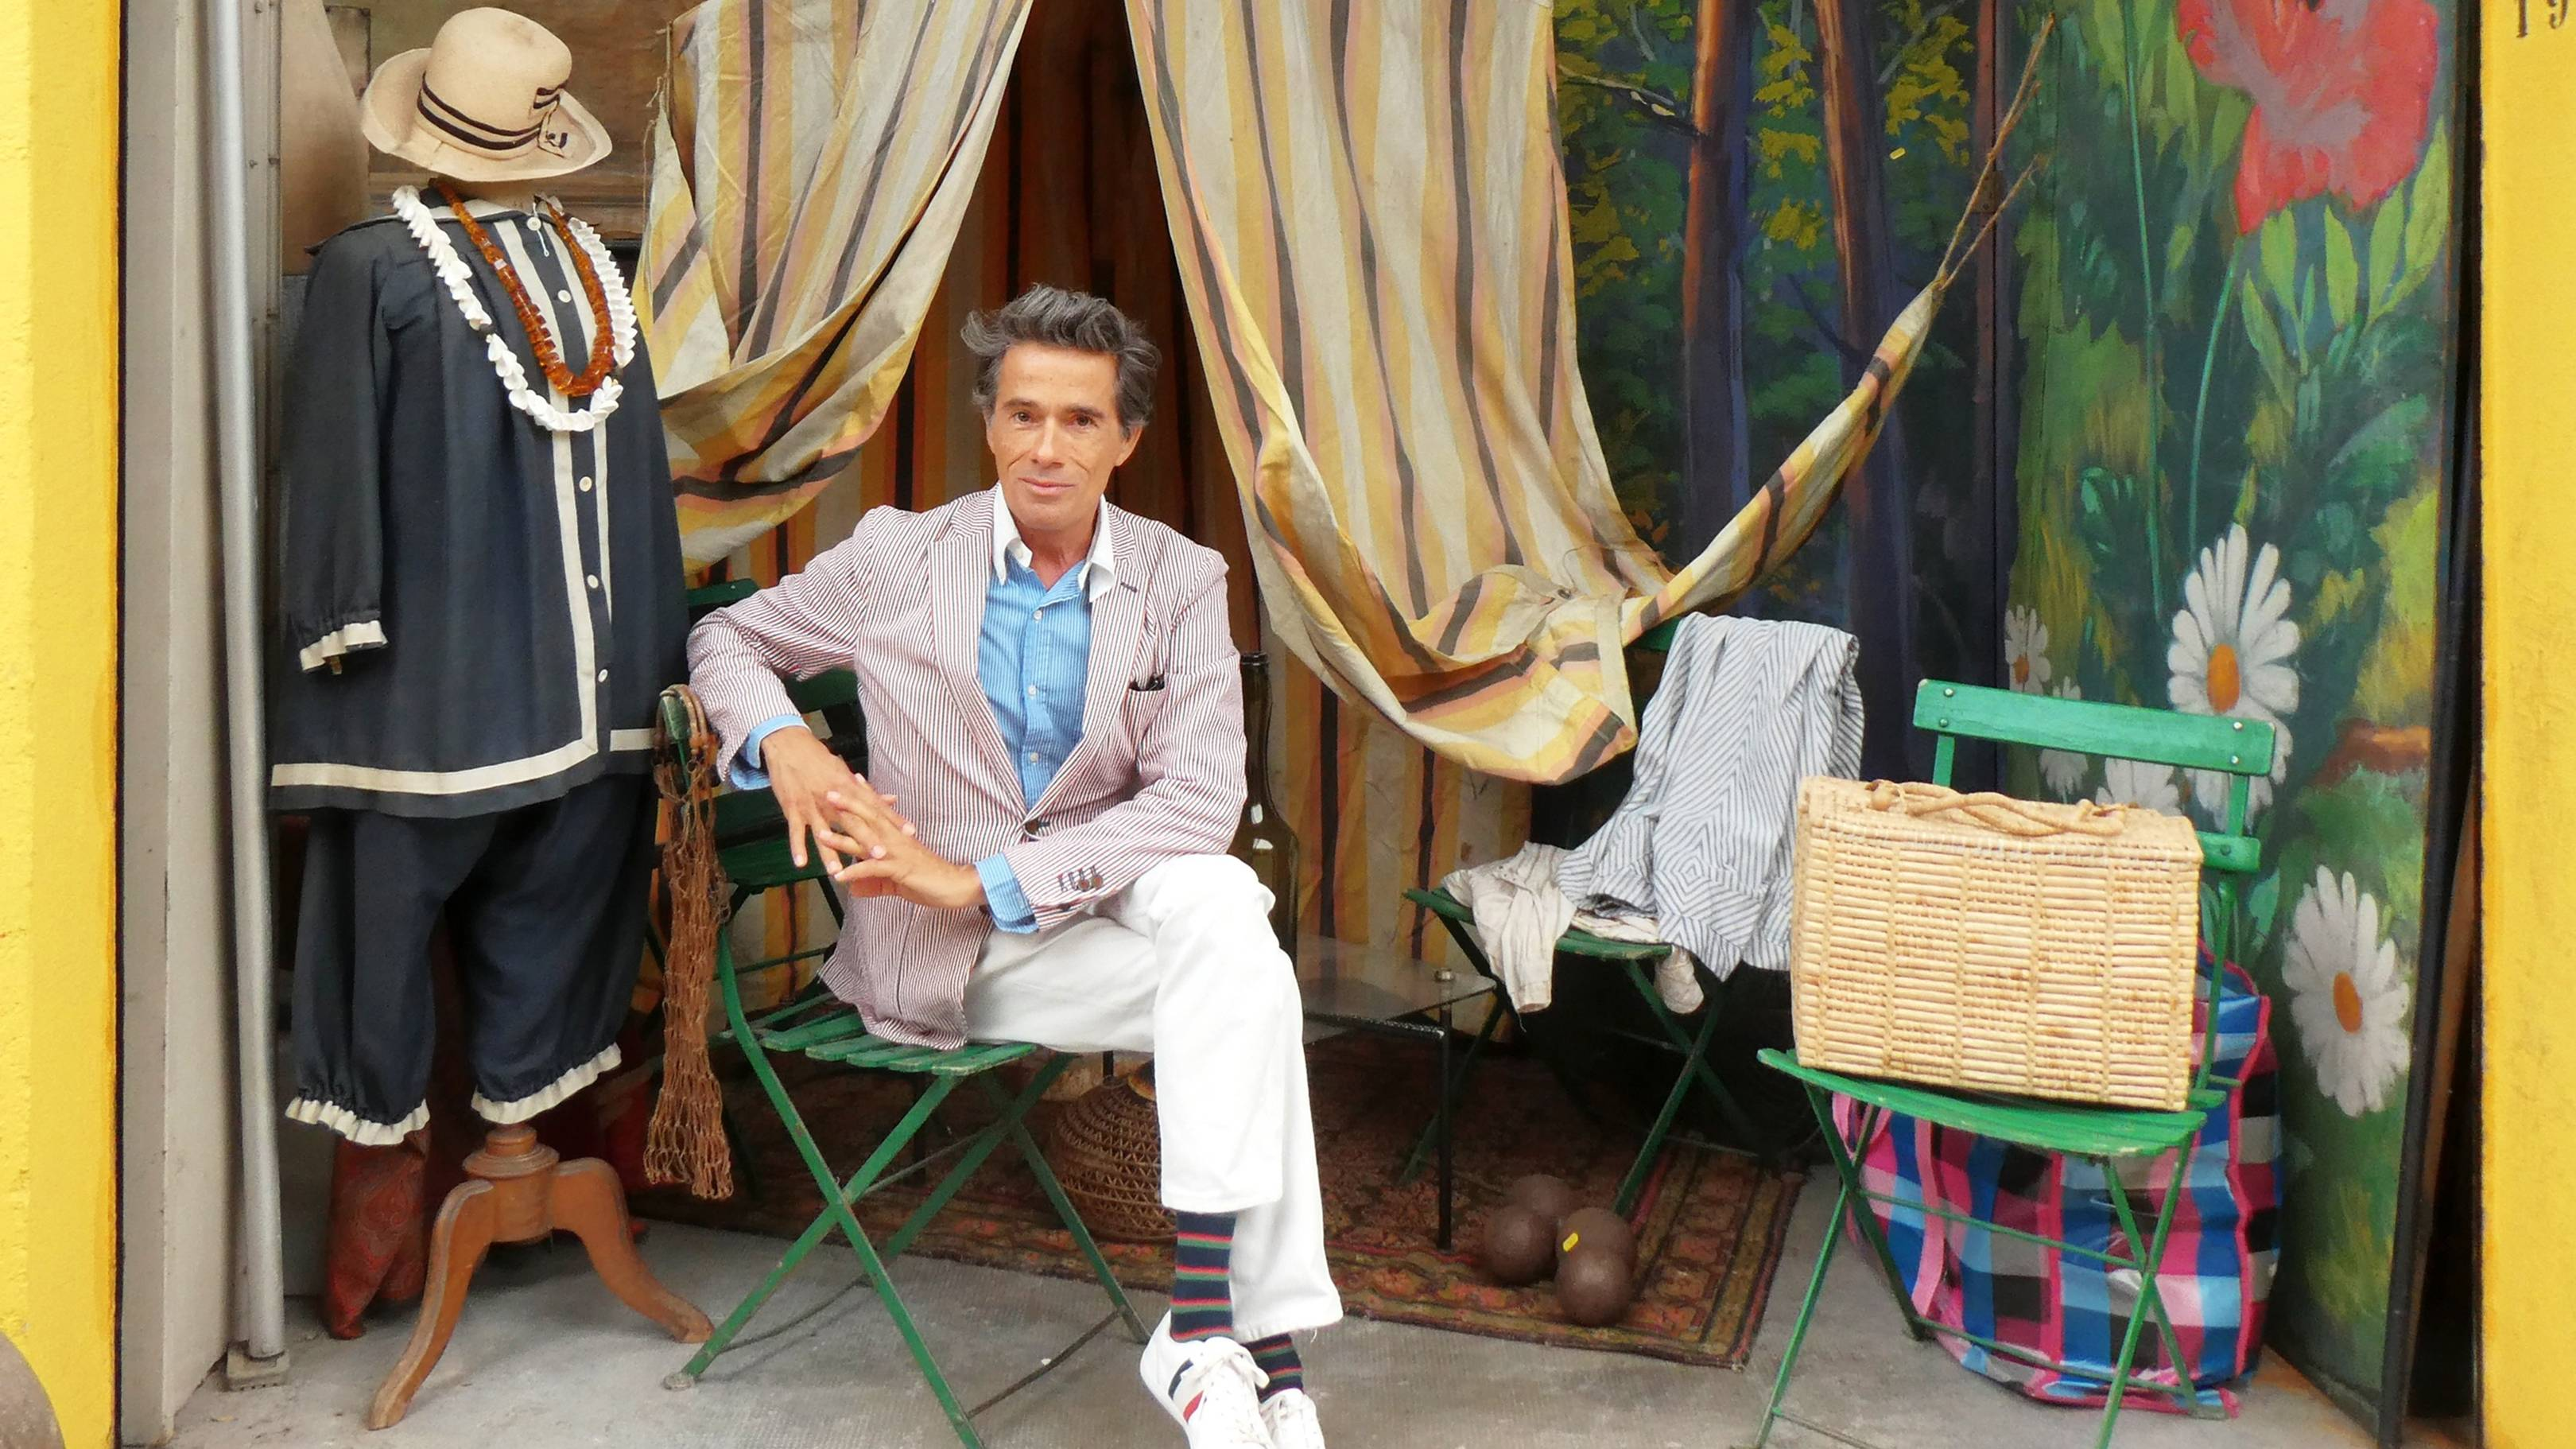 Vincent Darré gives an insider's guide to the Paris flea market